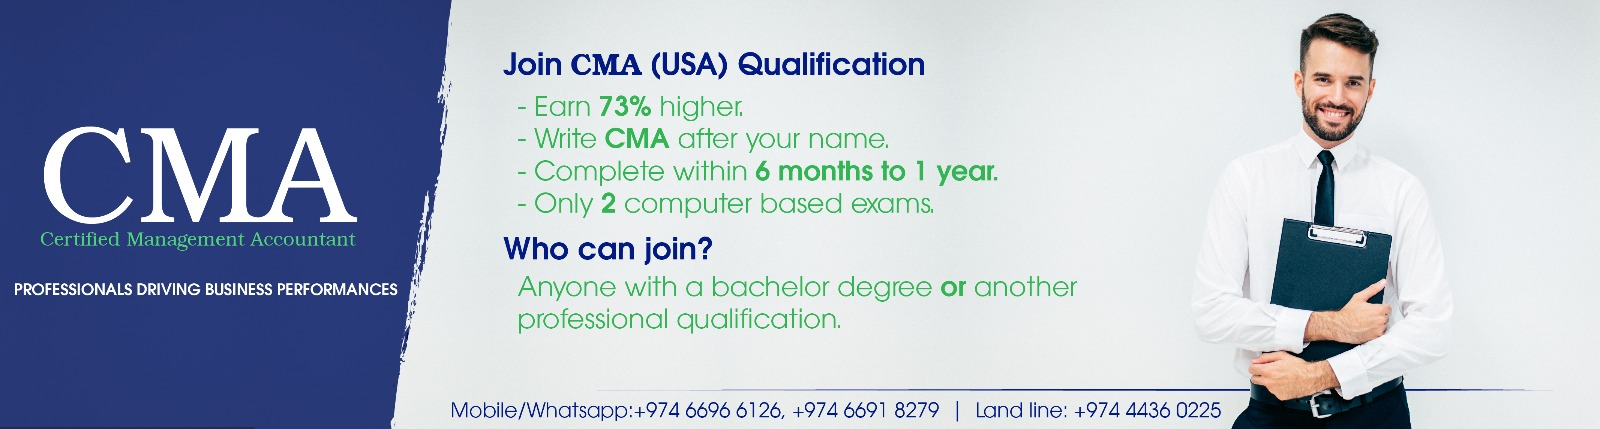 CMA Qatar Training Doha Tuition IMA